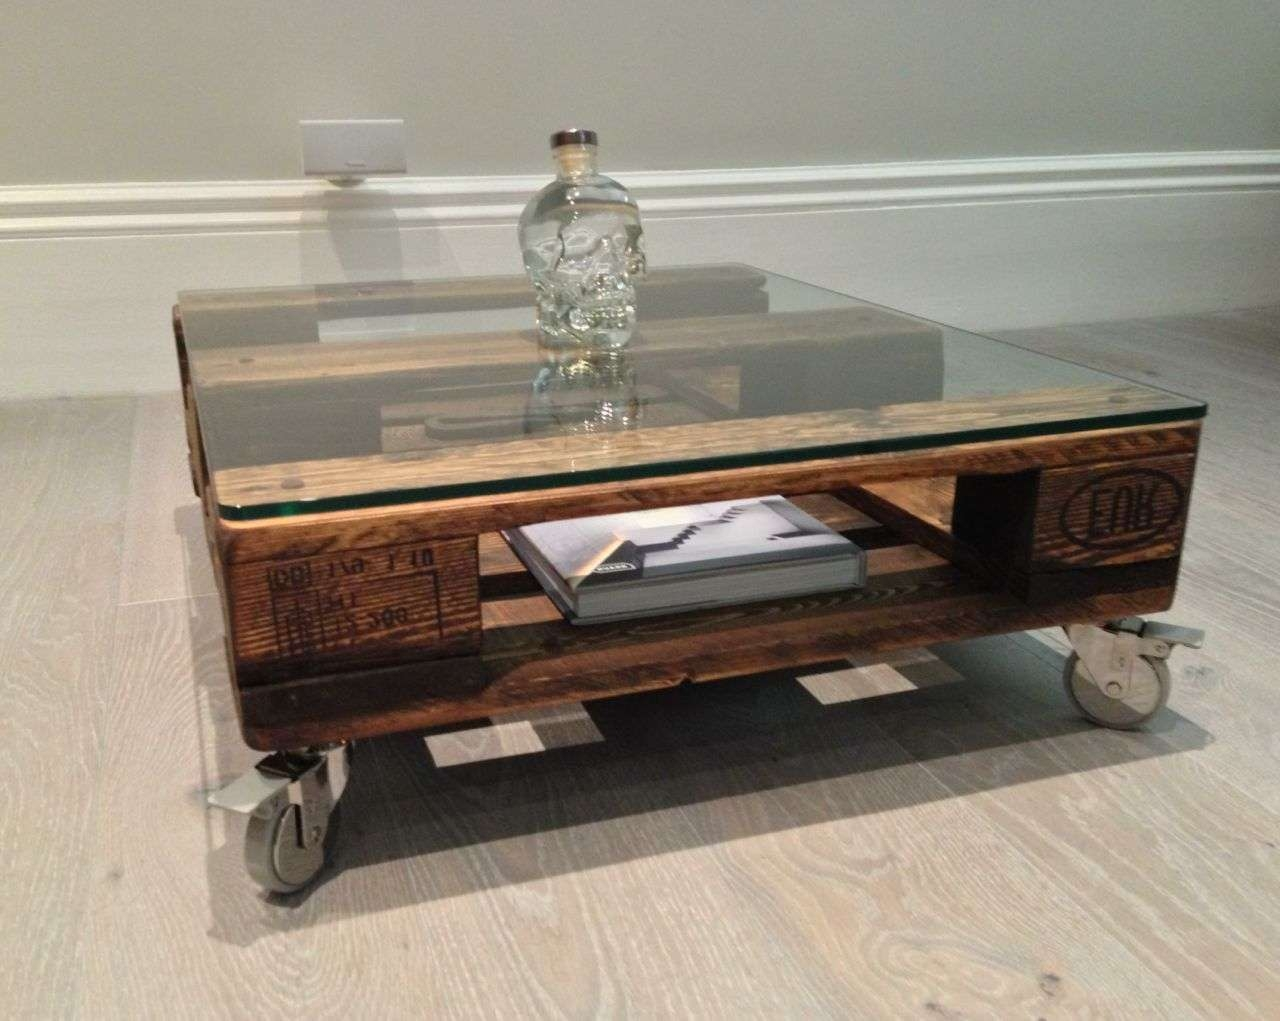 Elegant Glass Top Coffee Table Furniture Inspiration Ideas Simple Intended For Most Recent Coffee Tables With Shelf Underneath (View 5 of 20)